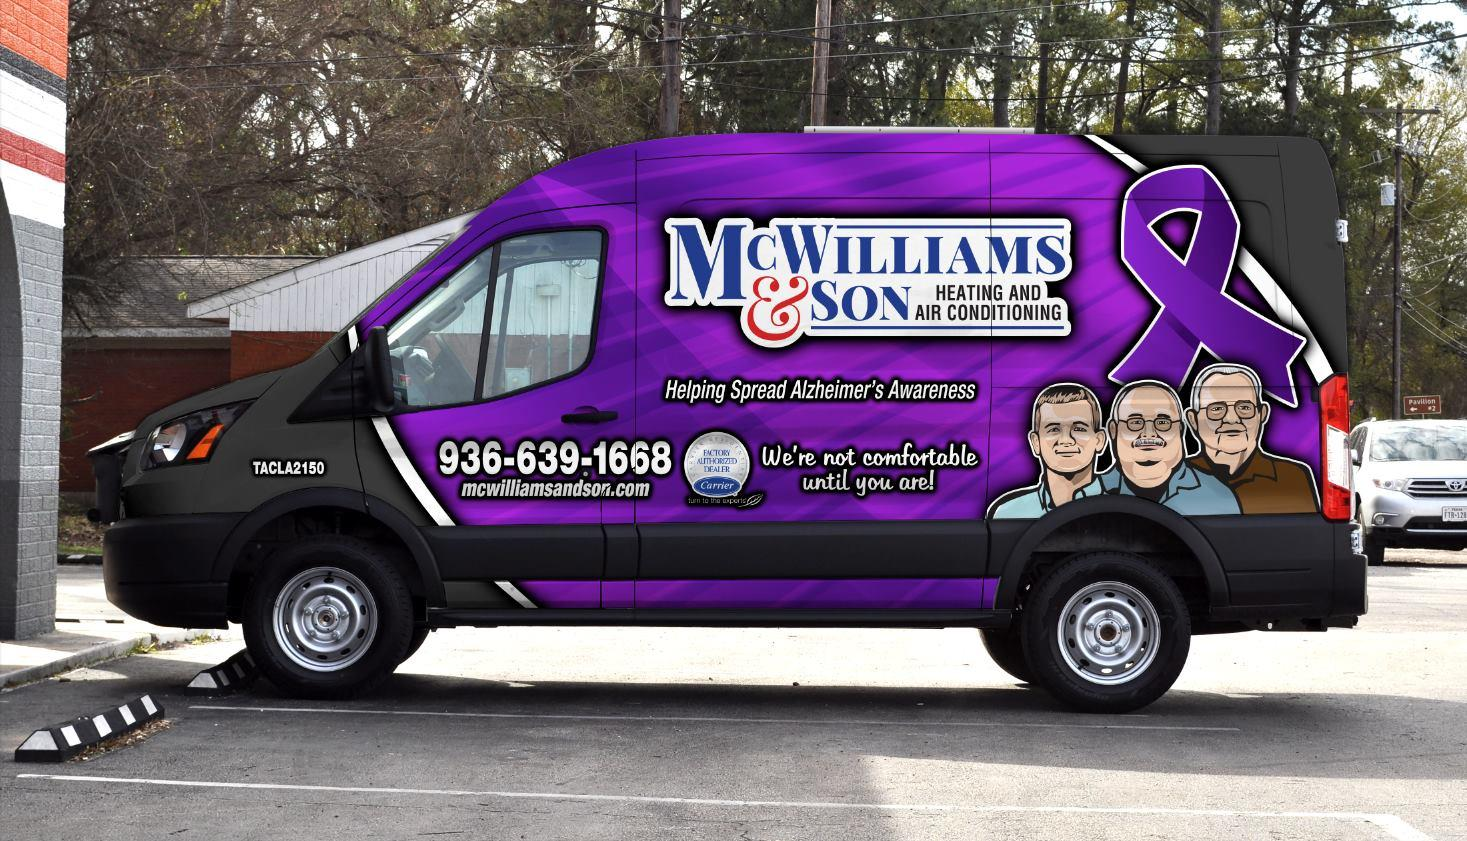 McWilliams & Son Heating and Air Conditioning